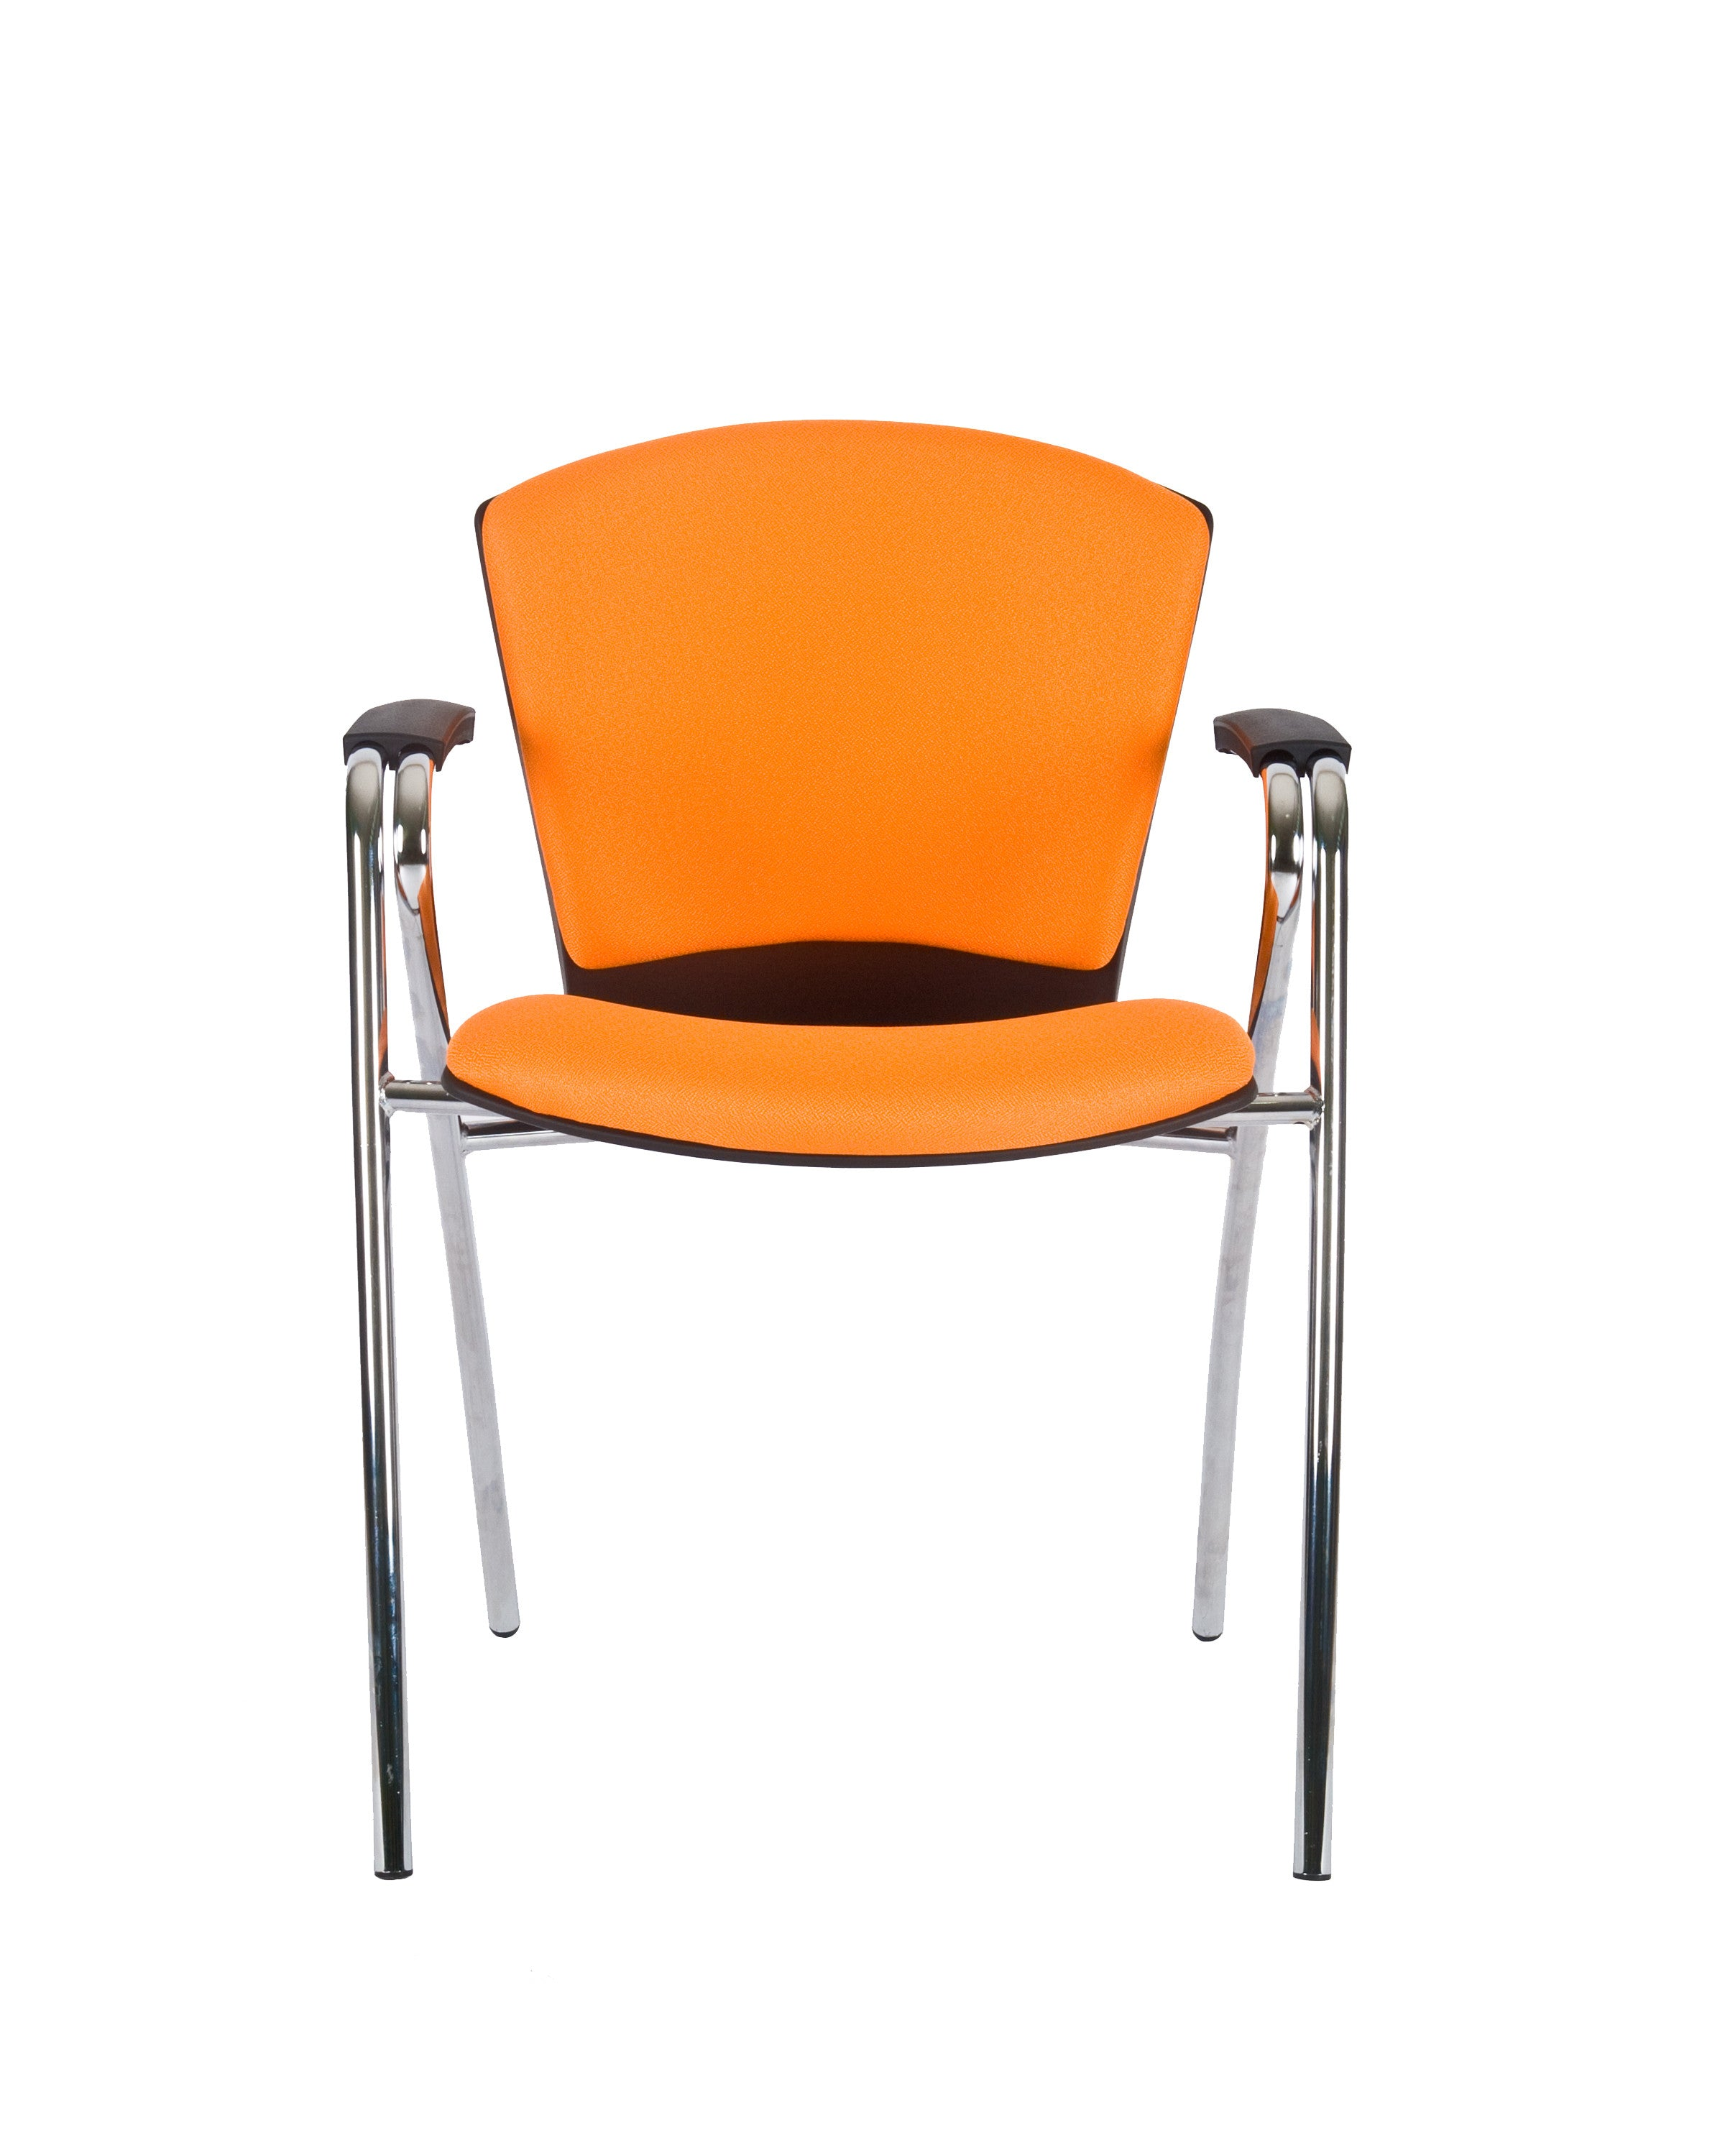 Modern Fabric Upholstered Stacking Guest Chair with Arms by Charm Furniture (Orange)